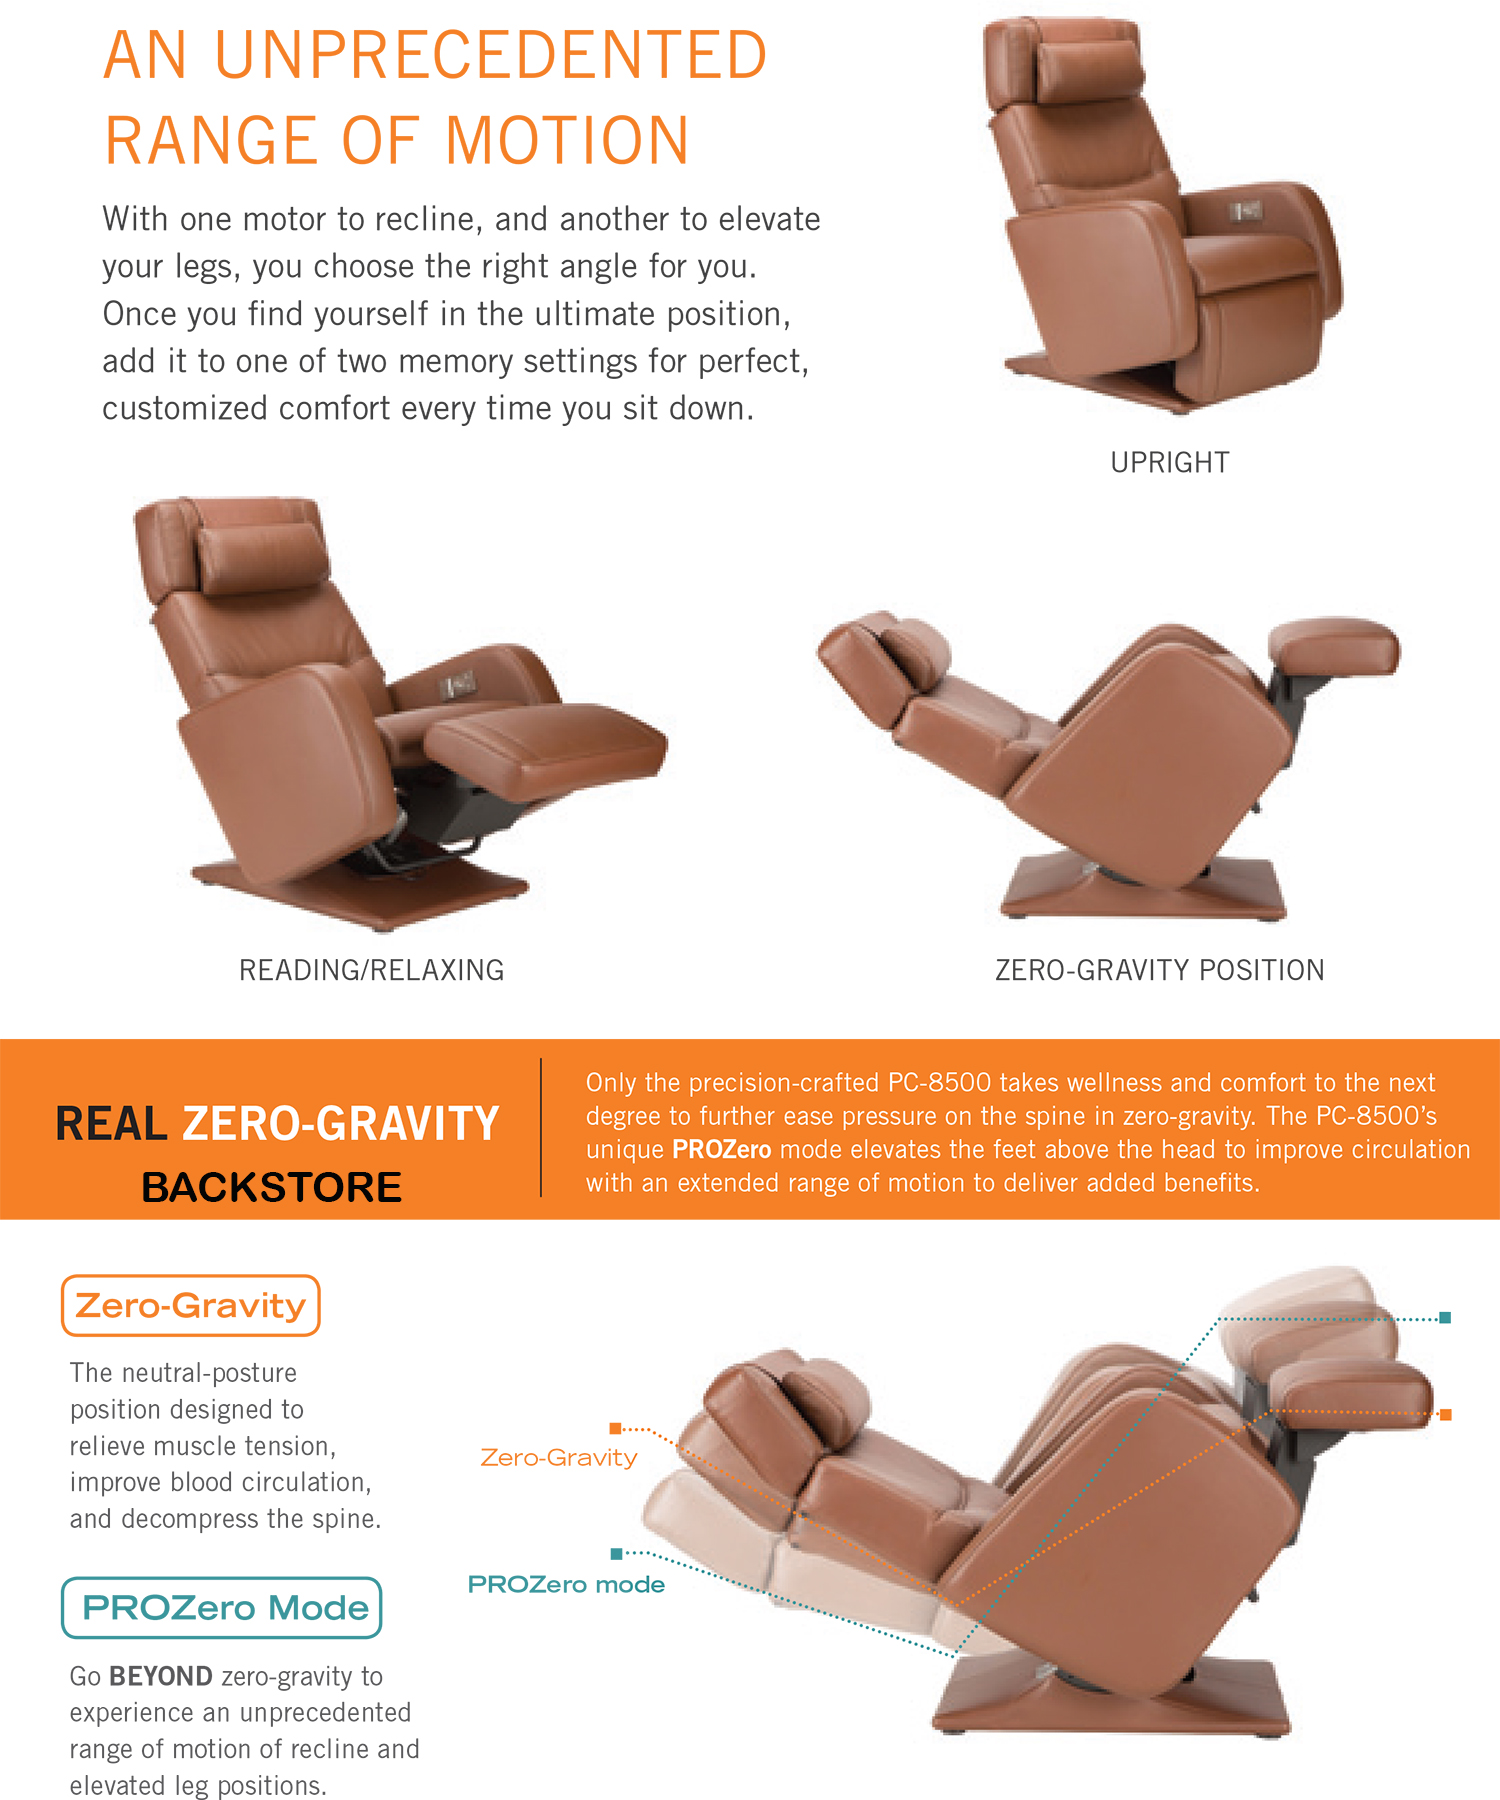 Features of the PC-8500 Zero-Gravity Perfect Chair Recliner from Human Touch  sc 1 st  Vitalityweb.com & Colors of the PC-8500 Zero-Gravity Electric Power Recline Perfect ... islam-shia.org